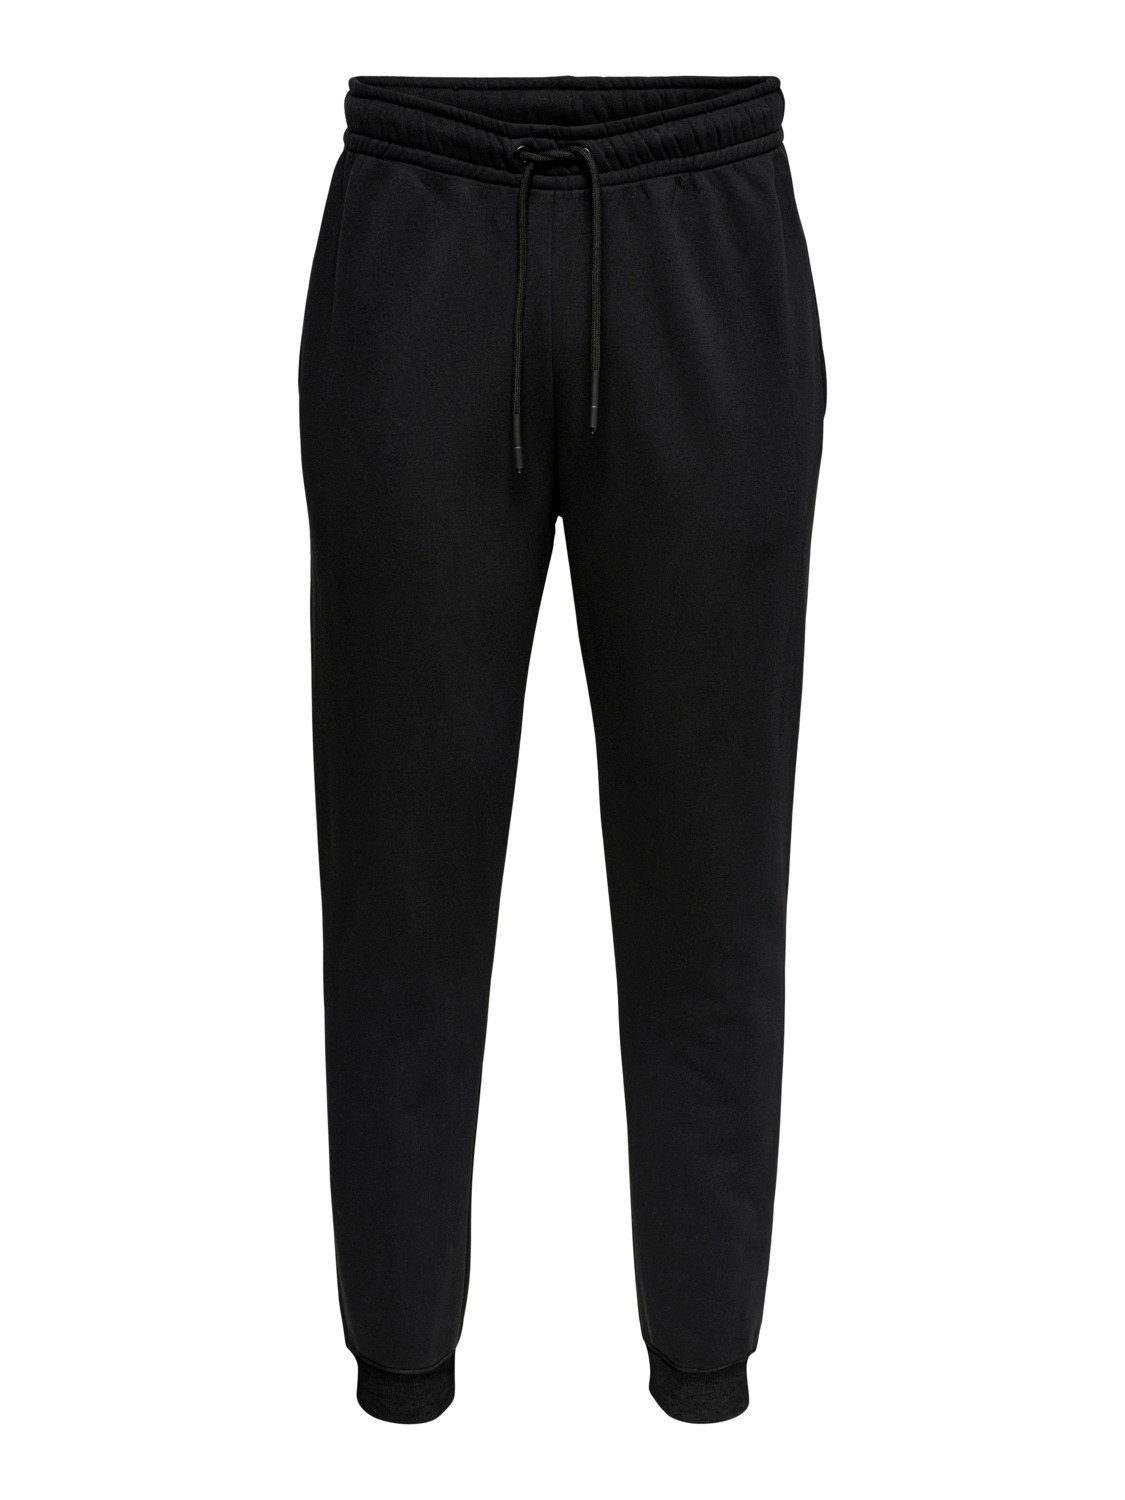 ONLY & SONS - ONSCERES SWEAT PANTS BLACK | GATE 36 Hobro